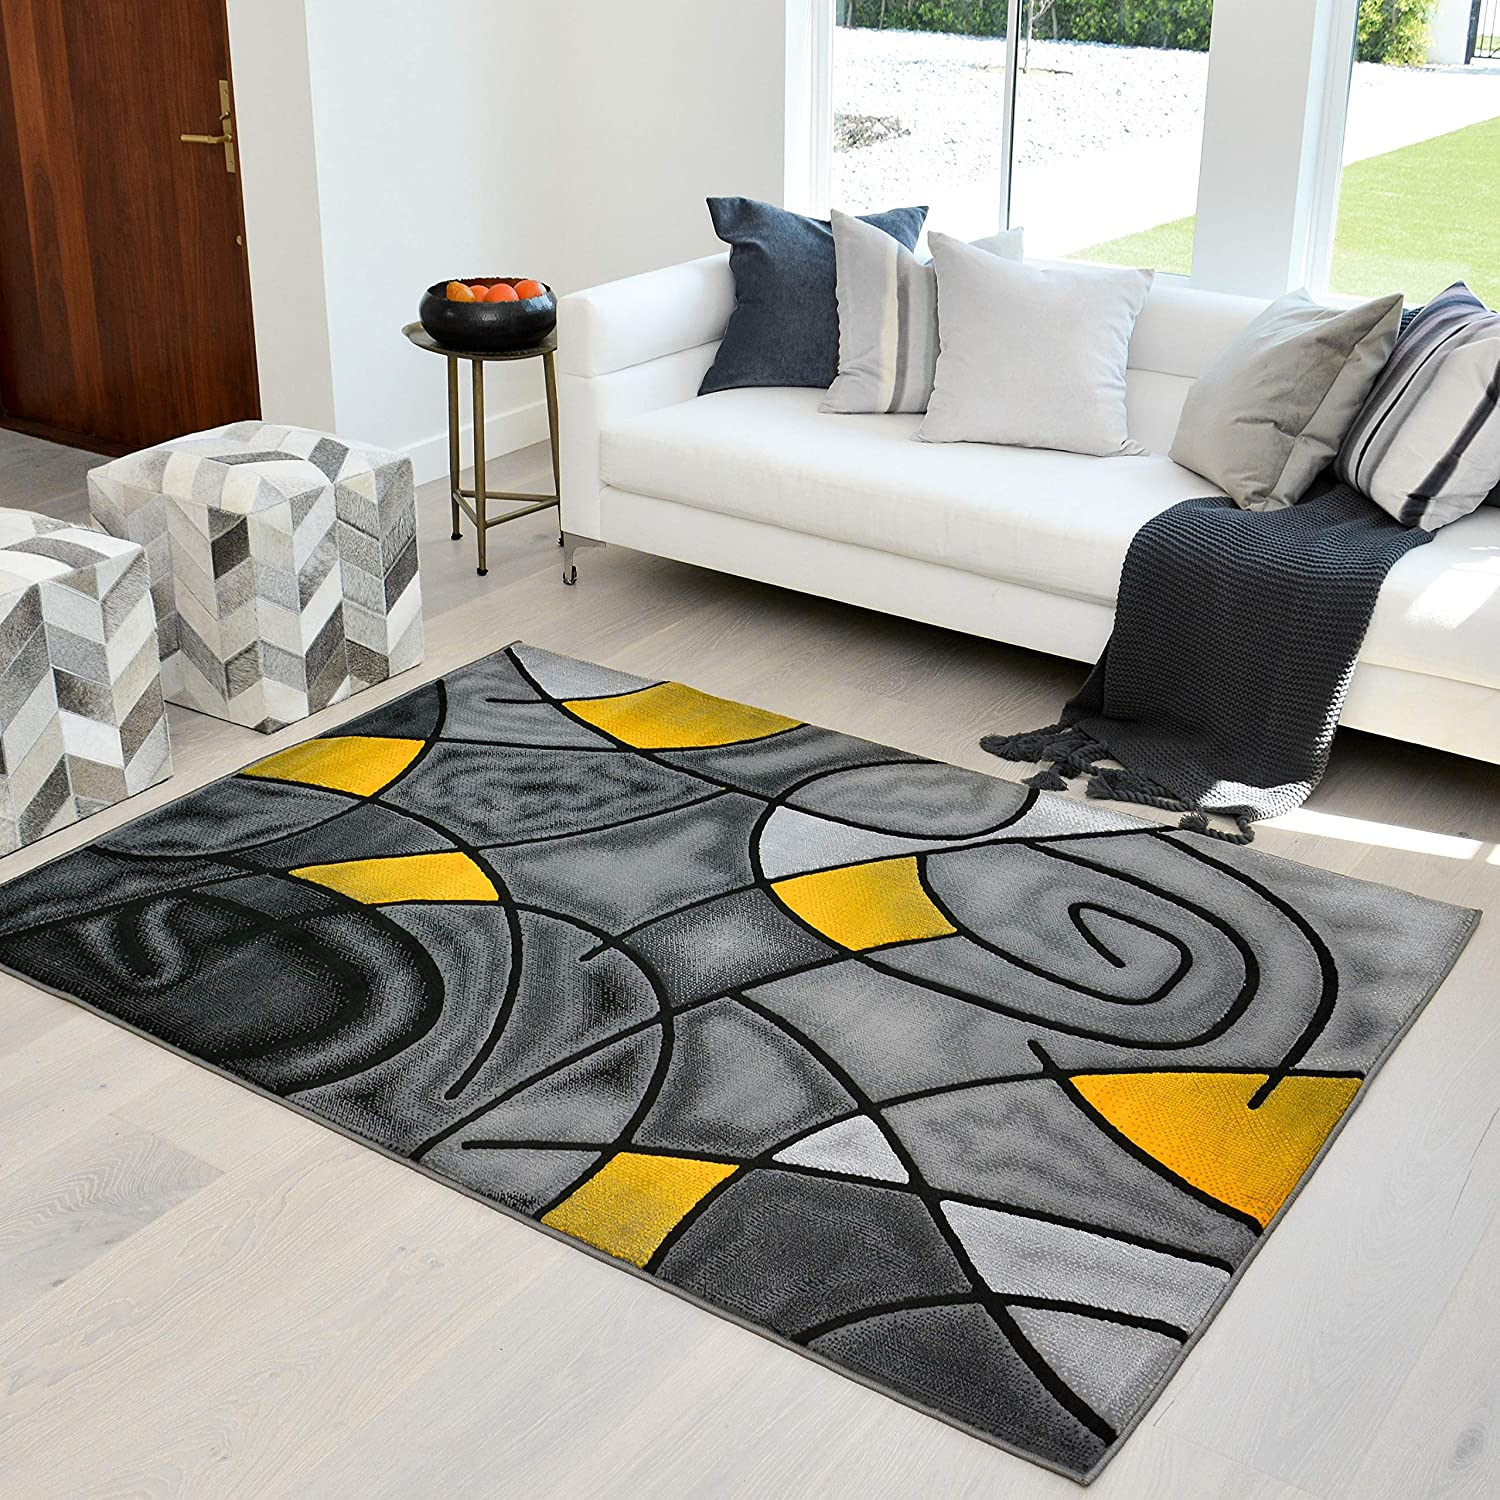 Amazon Com Hr Yellow Grey Silver Black Abstract Area Rug Modern Contemporary Circles And Wave Design Pattern 5 X 7 Home Kitchen